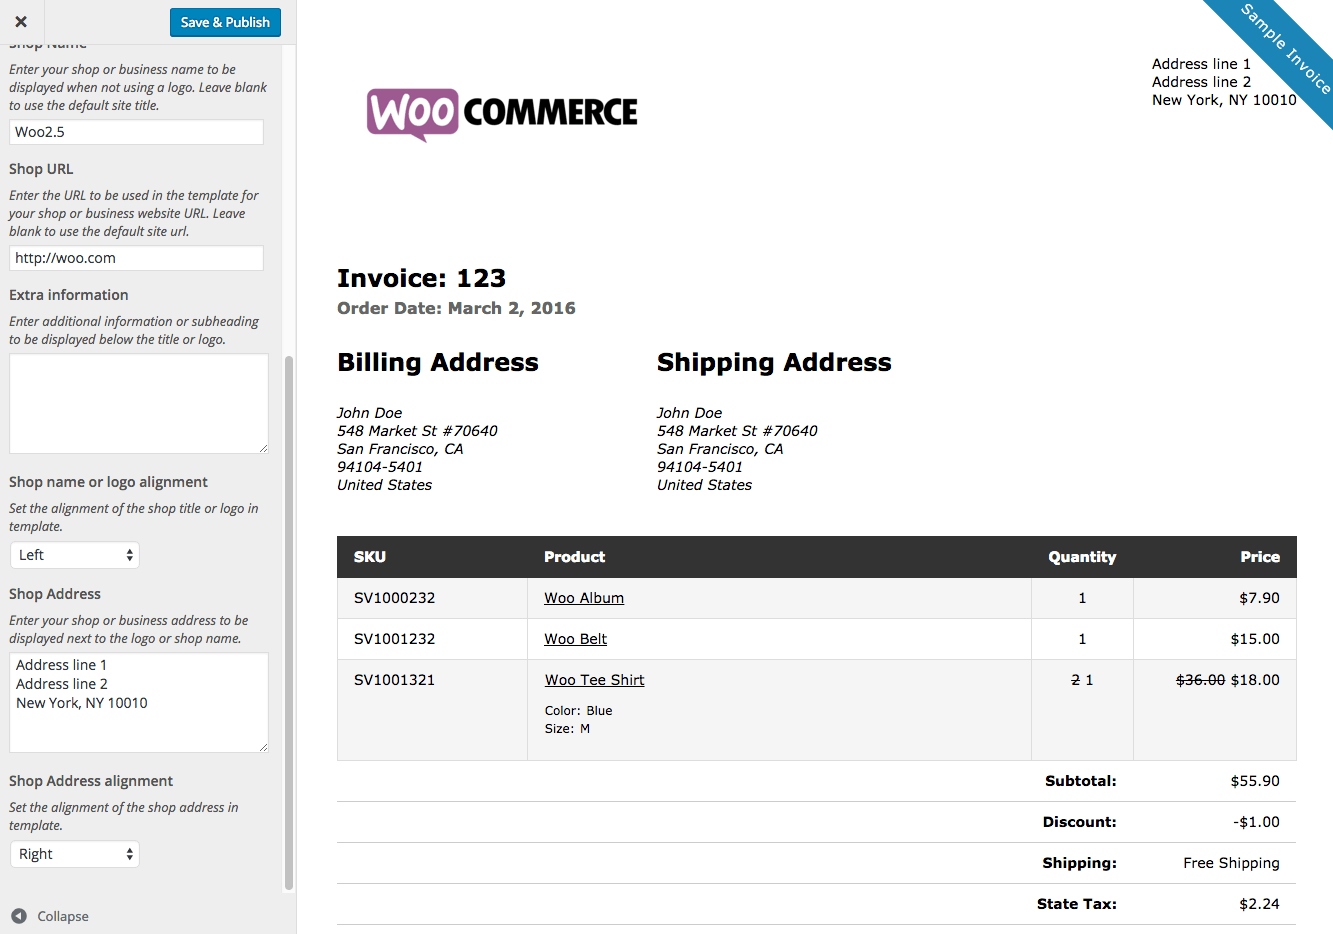 Coolmathgamesus  Unique Woocommerce Print Invoices Amp Packing Lists  Woocommerce Docs With Luxury Woocommerce Print Invoices  Packing Lists Customizer With Enchanting Online Receipt Template Also Receiption In Addition Constructive Receipt Irs And Autozone Return Policy Without Receipt As Well As Sevis Receipt Additionally Rei Return Without Receipt From Docswoocommercecom With Coolmathgamesus  Luxury Woocommerce Print Invoices Amp Packing Lists  Woocommerce Docs With Enchanting Woocommerce Print Invoices  Packing Lists Customizer And Unique Online Receipt Template Also Receiption In Addition Constructive Receipt Irs From Docswoocommercecom